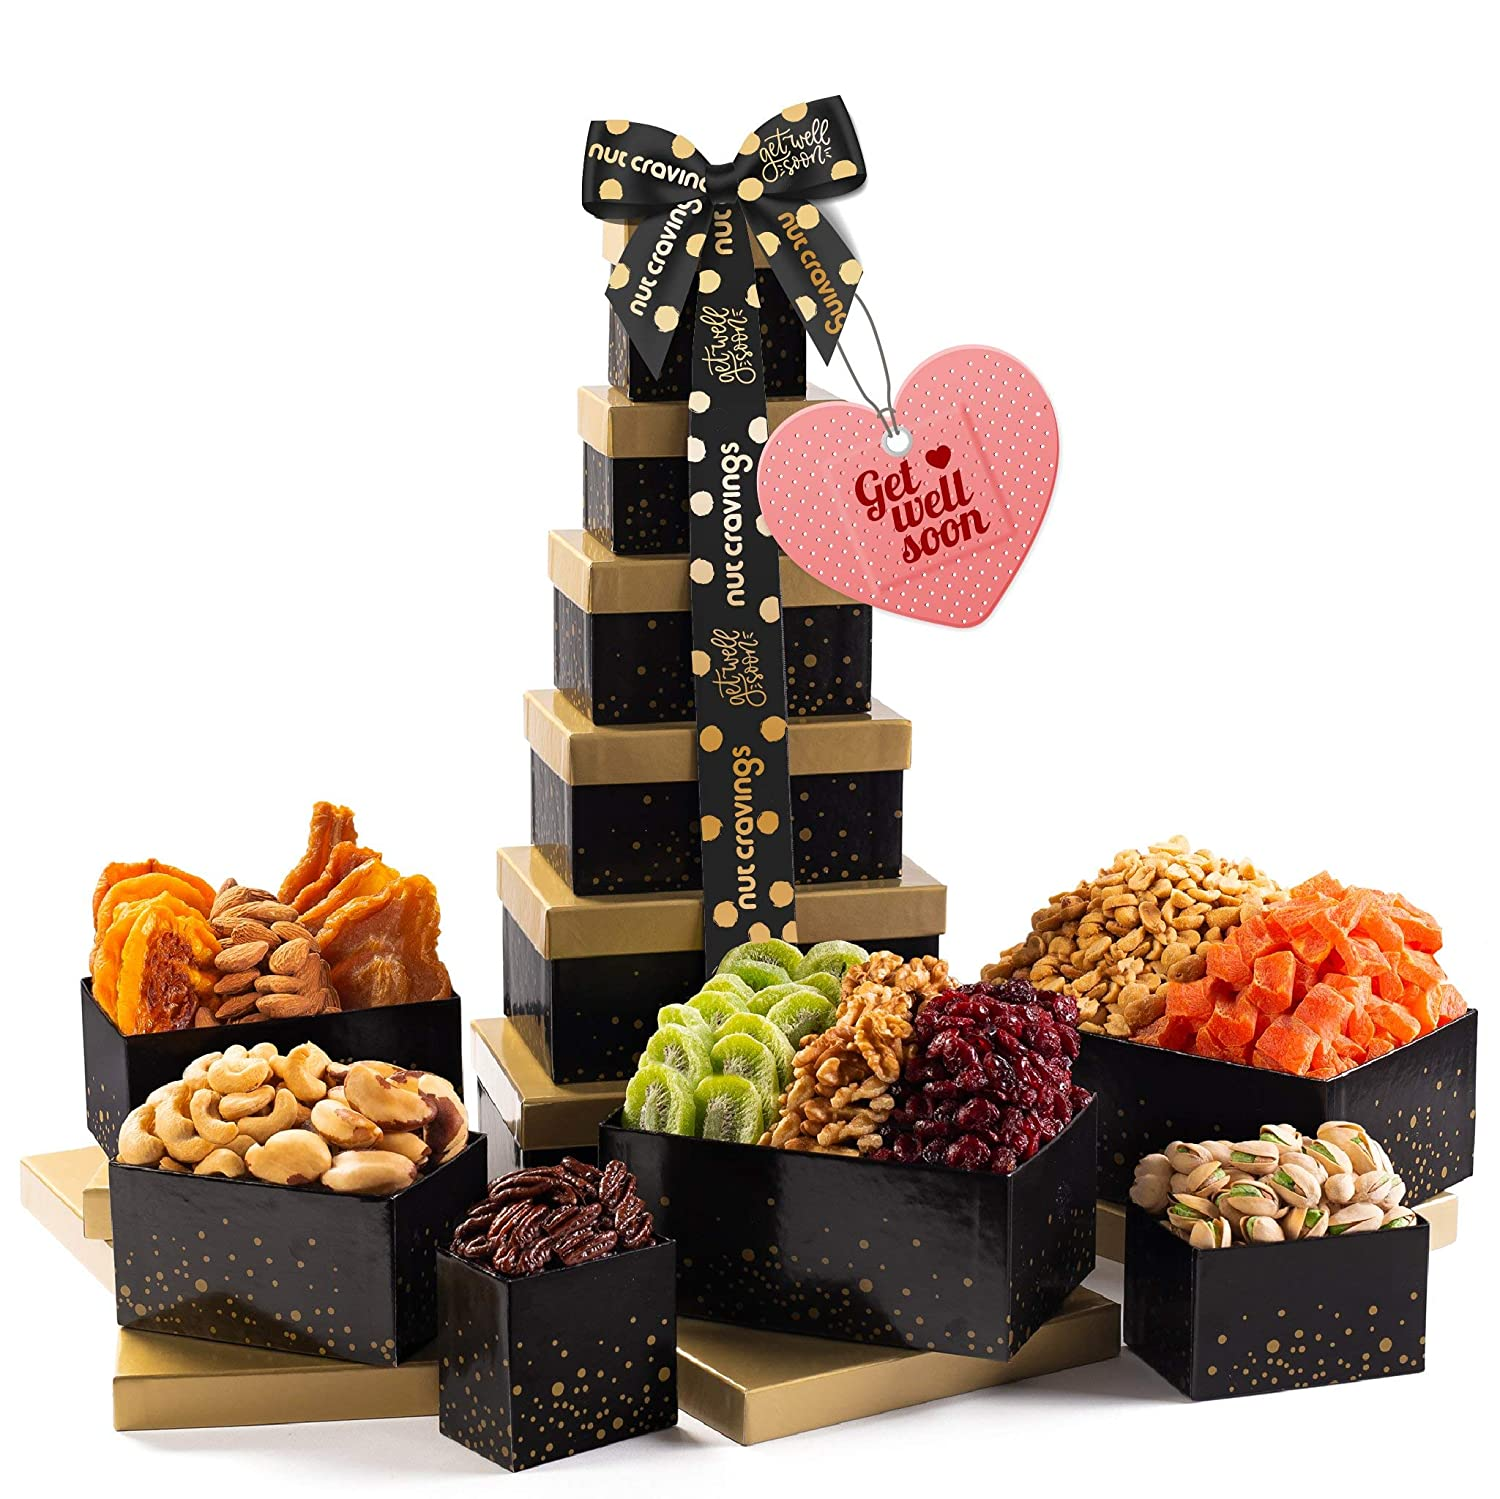 Get Well Soon Nut & Dried Fruit Tower Gift Basket, (12 Mix) - Valentine Food Arrangement Platter, Care Package Variety, Prime Birthday Assortment, Healthy Kosher Snack Box for Women, Men, Adults